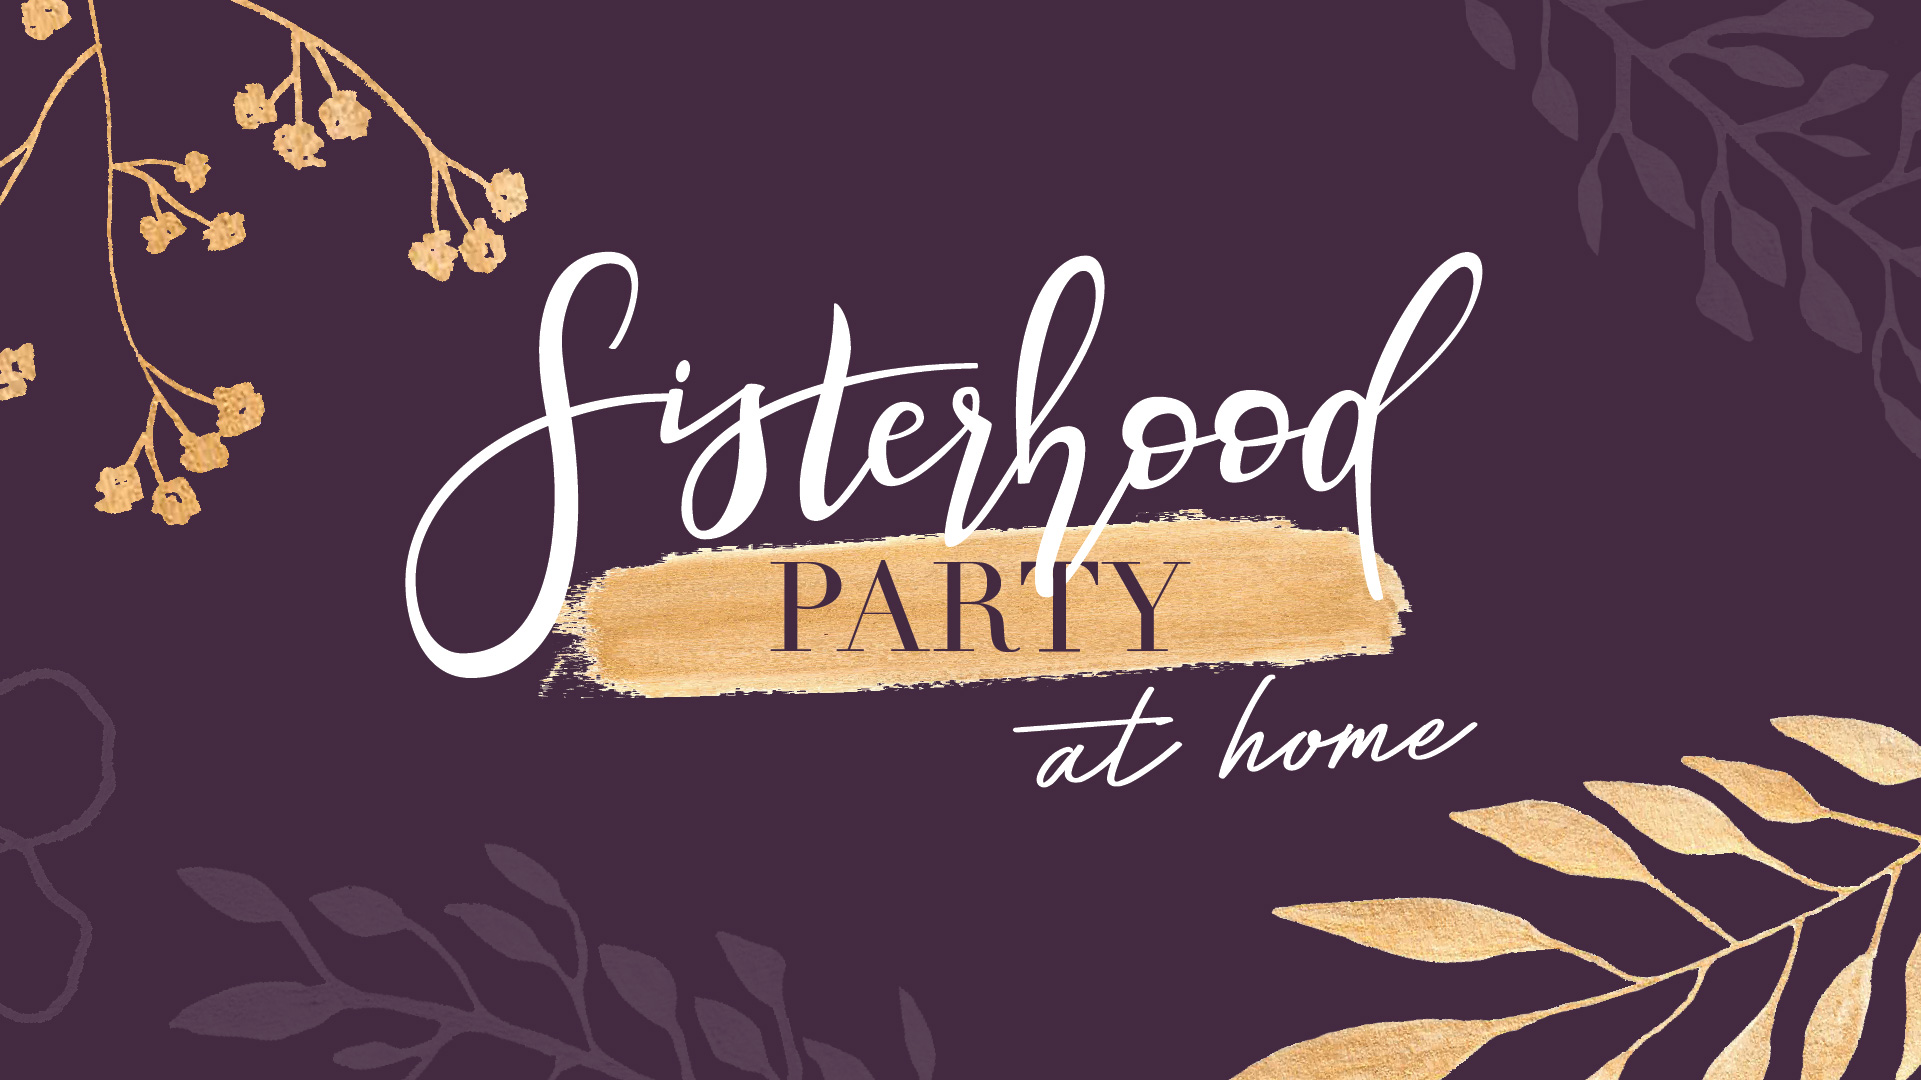 Screen Graphics_Sisterhood Party at Home